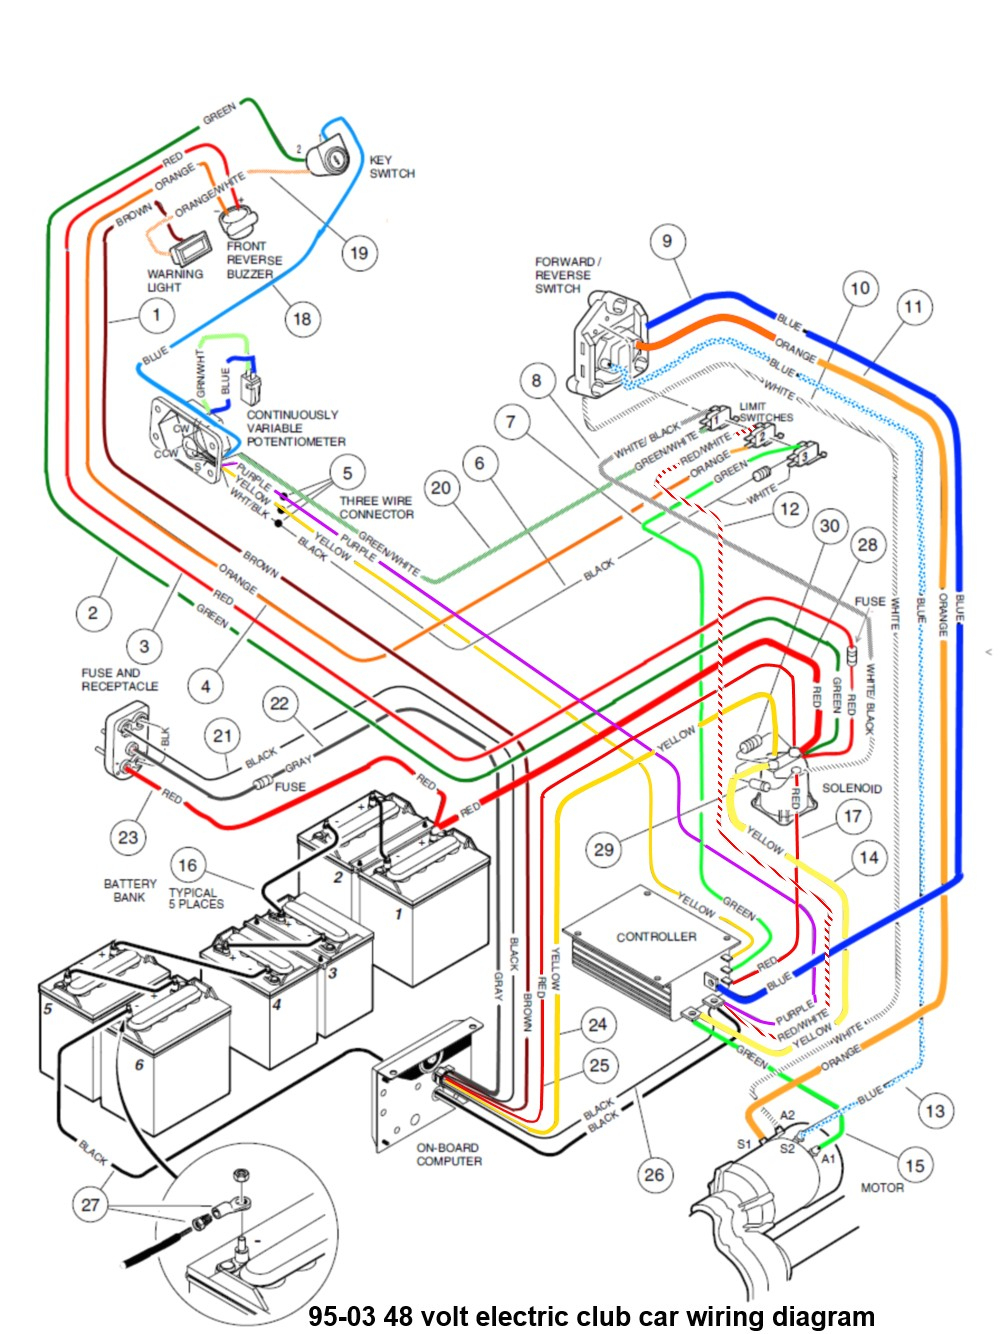 2003 F250 V1 0 Wiring Diagram | Wiring Library - Club Car Ds Wiring Diagram